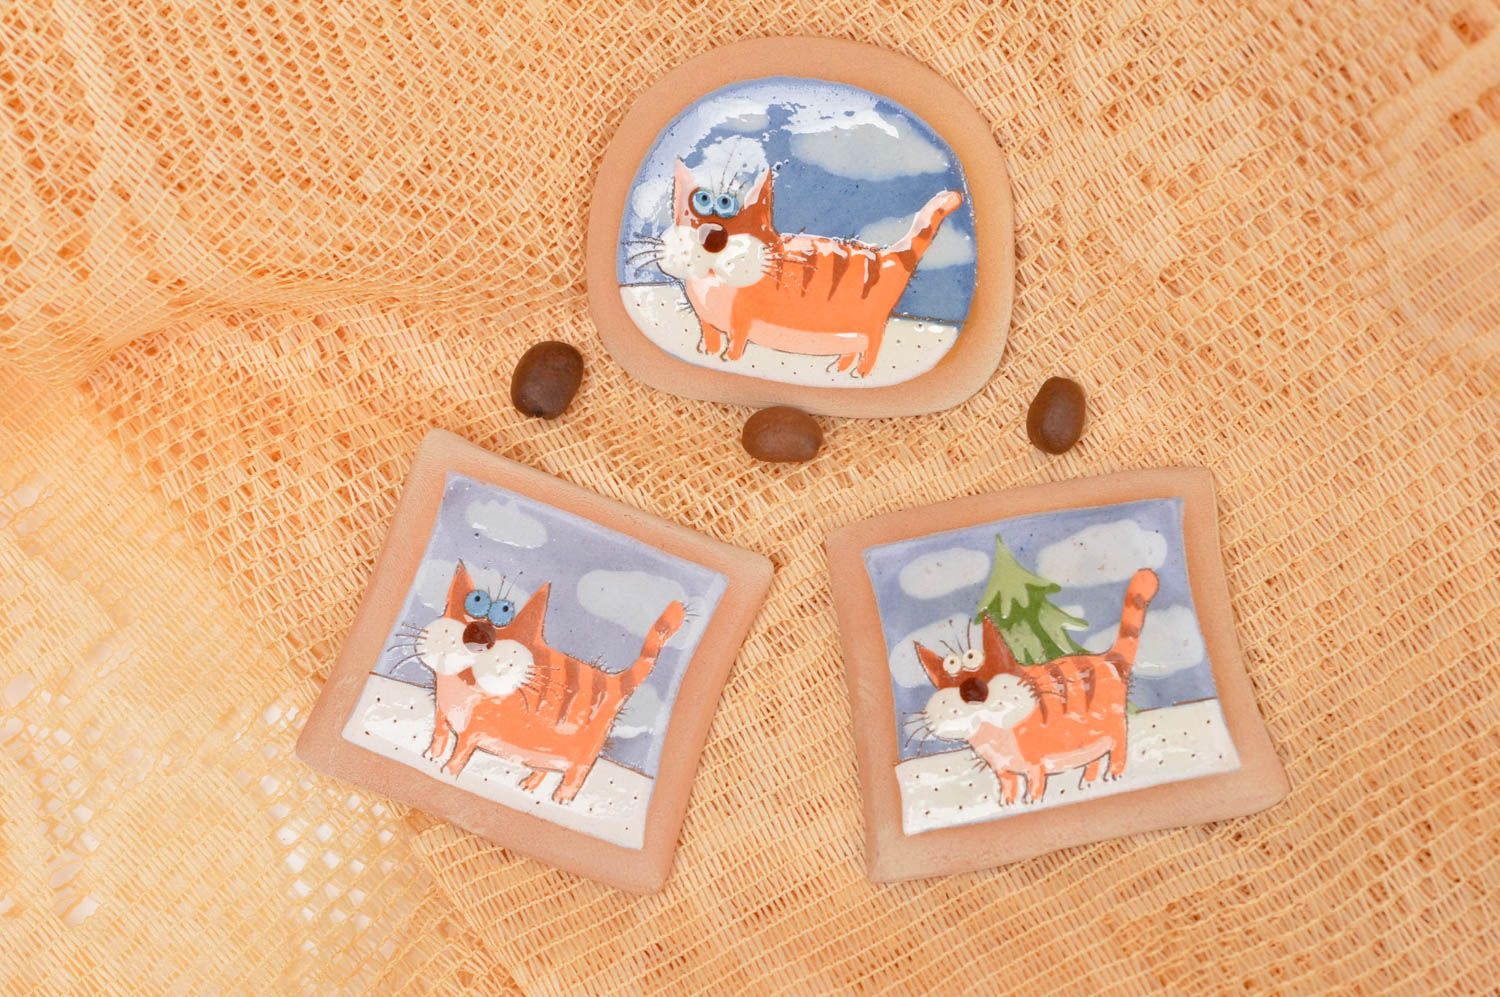 Handmade fridge magnet funny clay magnets cool fridge magnets 3 pieces photo 1